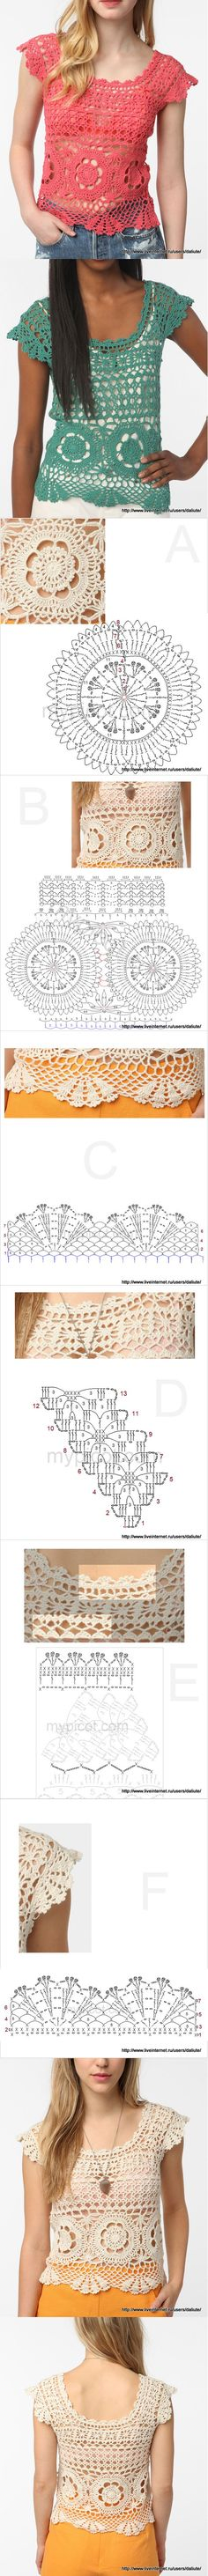 Nice crochet top with all the charts!